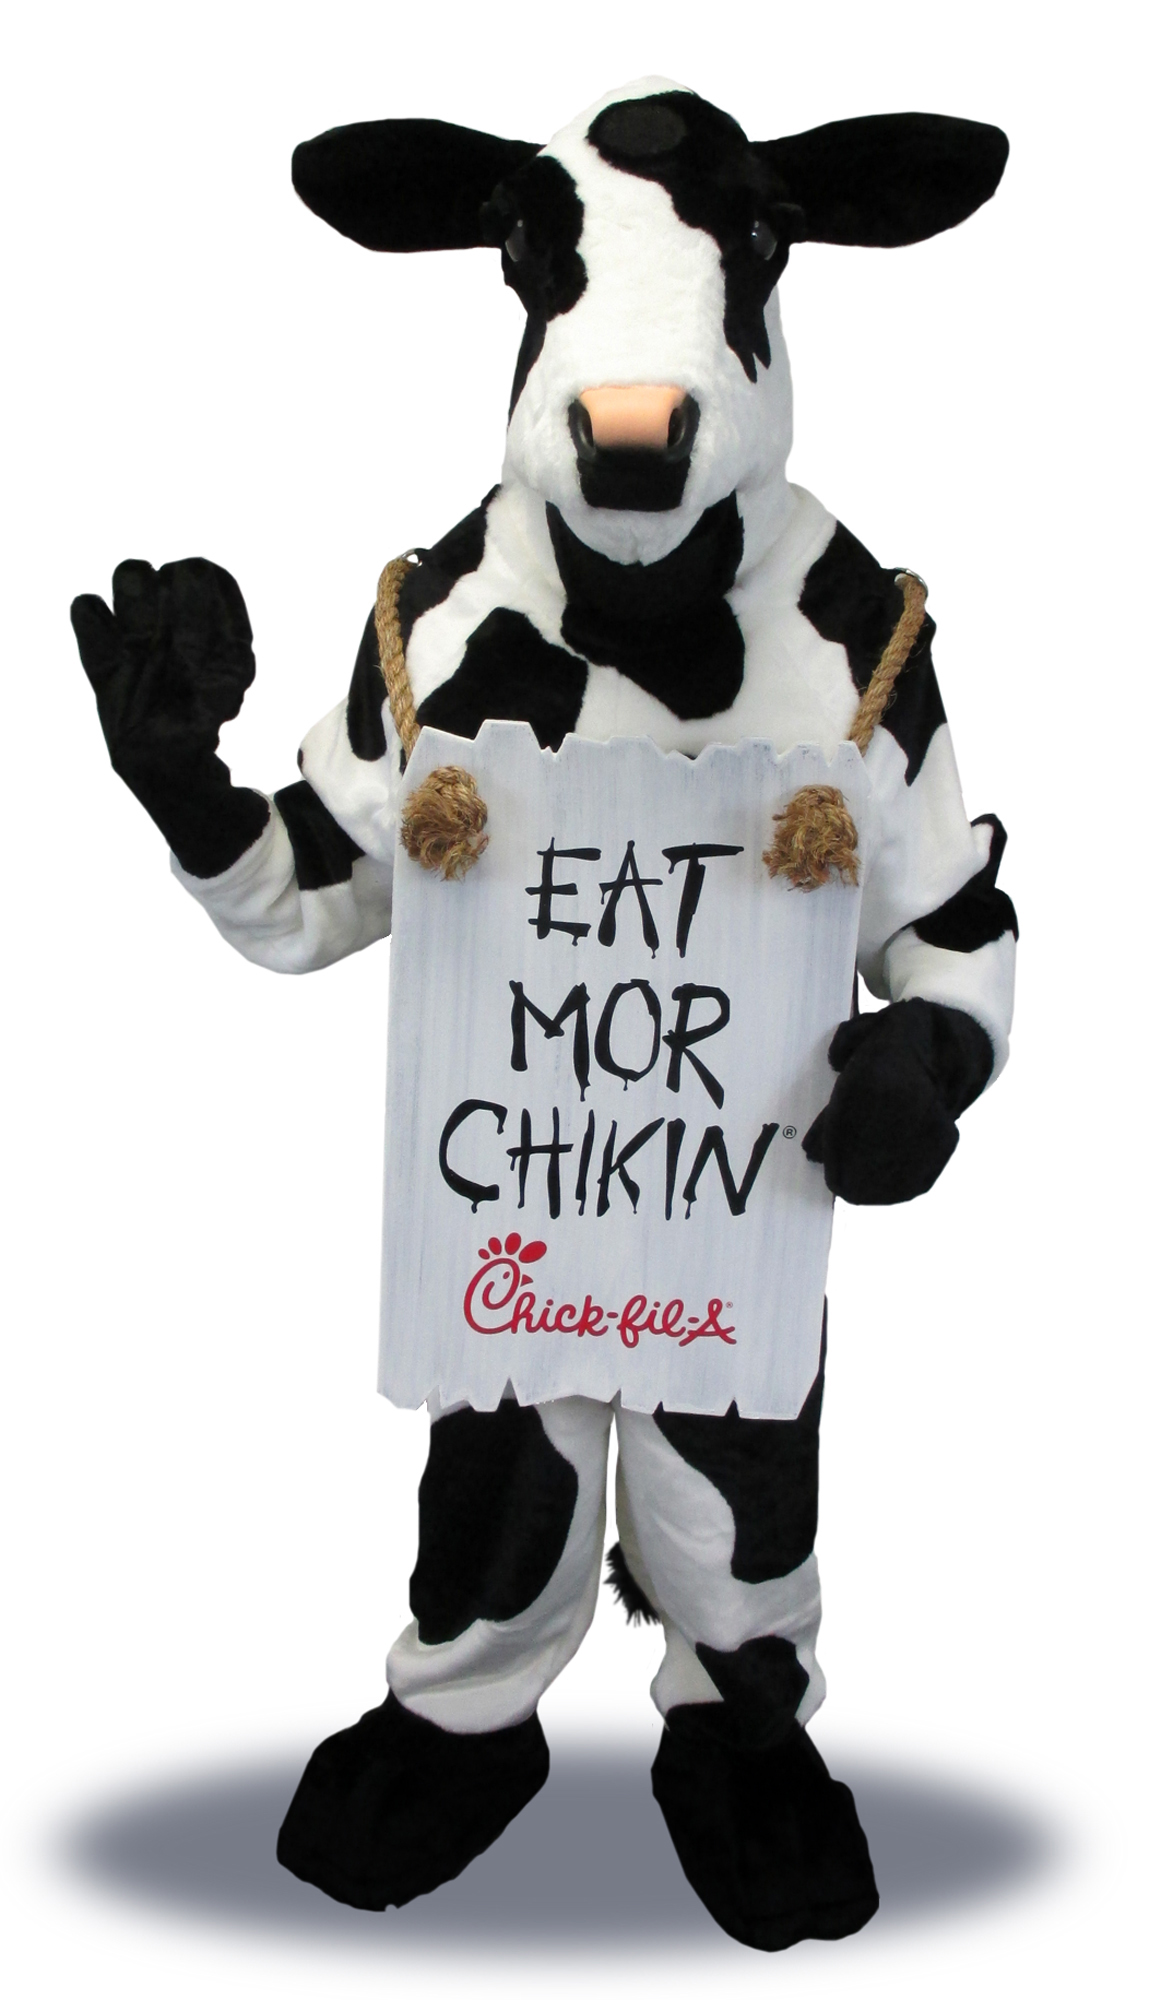 1173x2000 20thnniversary Of The Eat Mor Chikin Cow Campaign Chick Fil